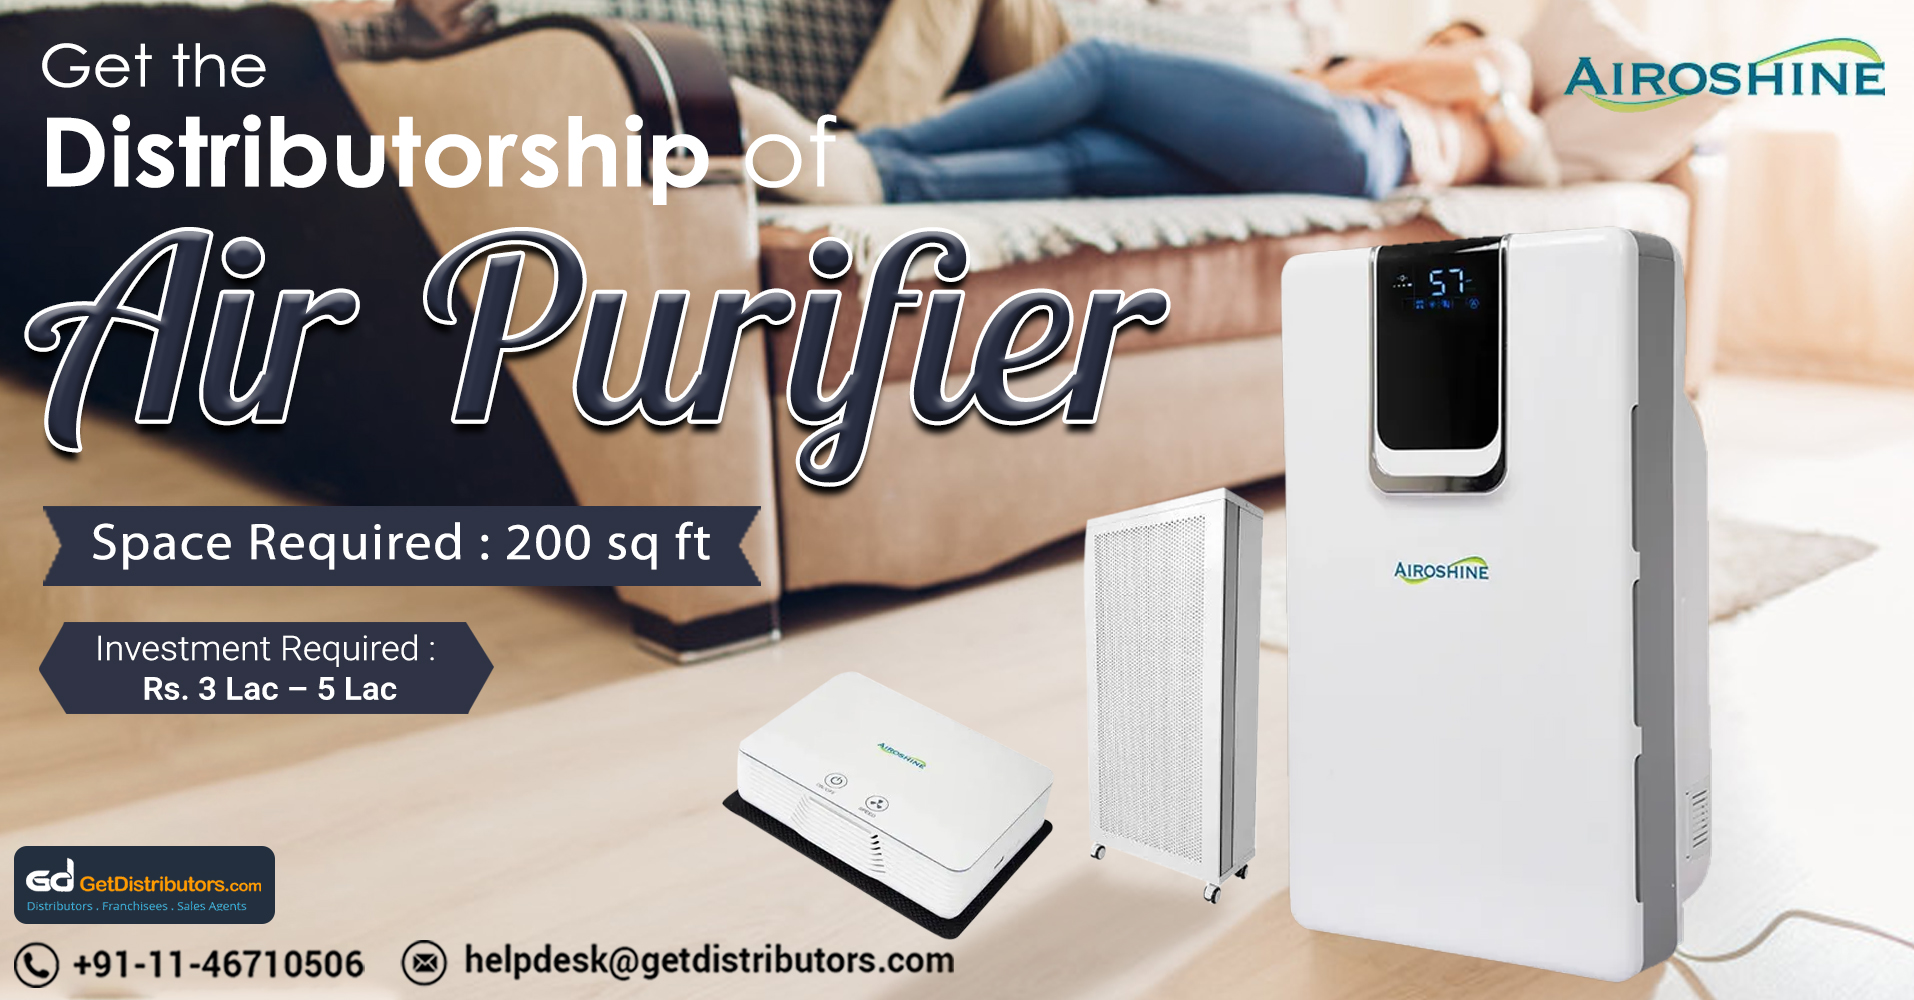 Breathe Clean Air With Our Extensive Range Of Air Purifiers